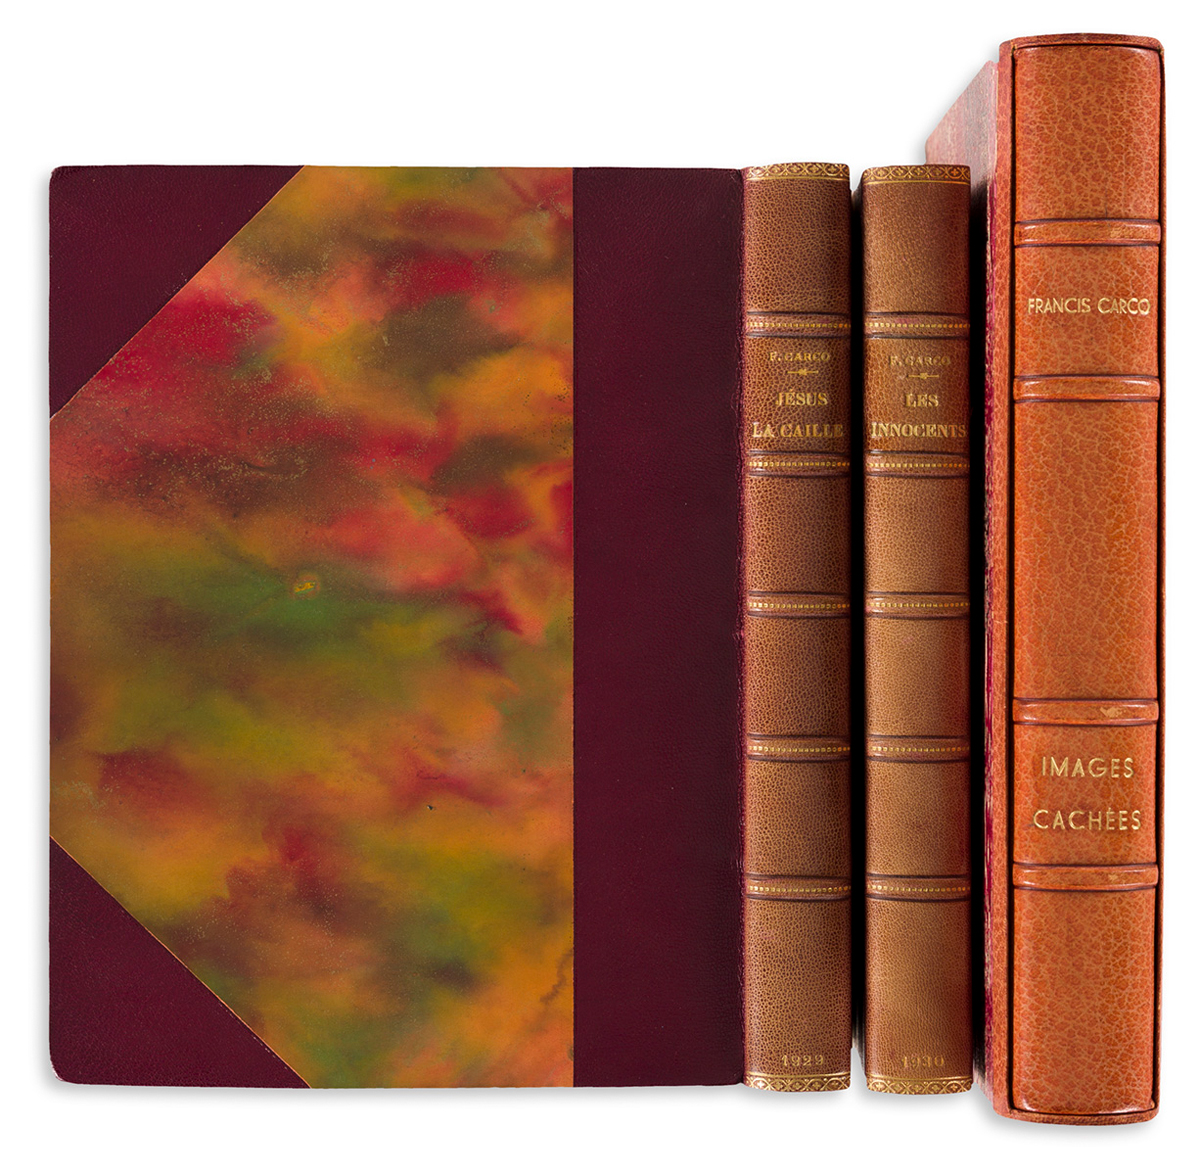 FRANCIS CARCO (1886-1958) Three Limited Edition Titles.